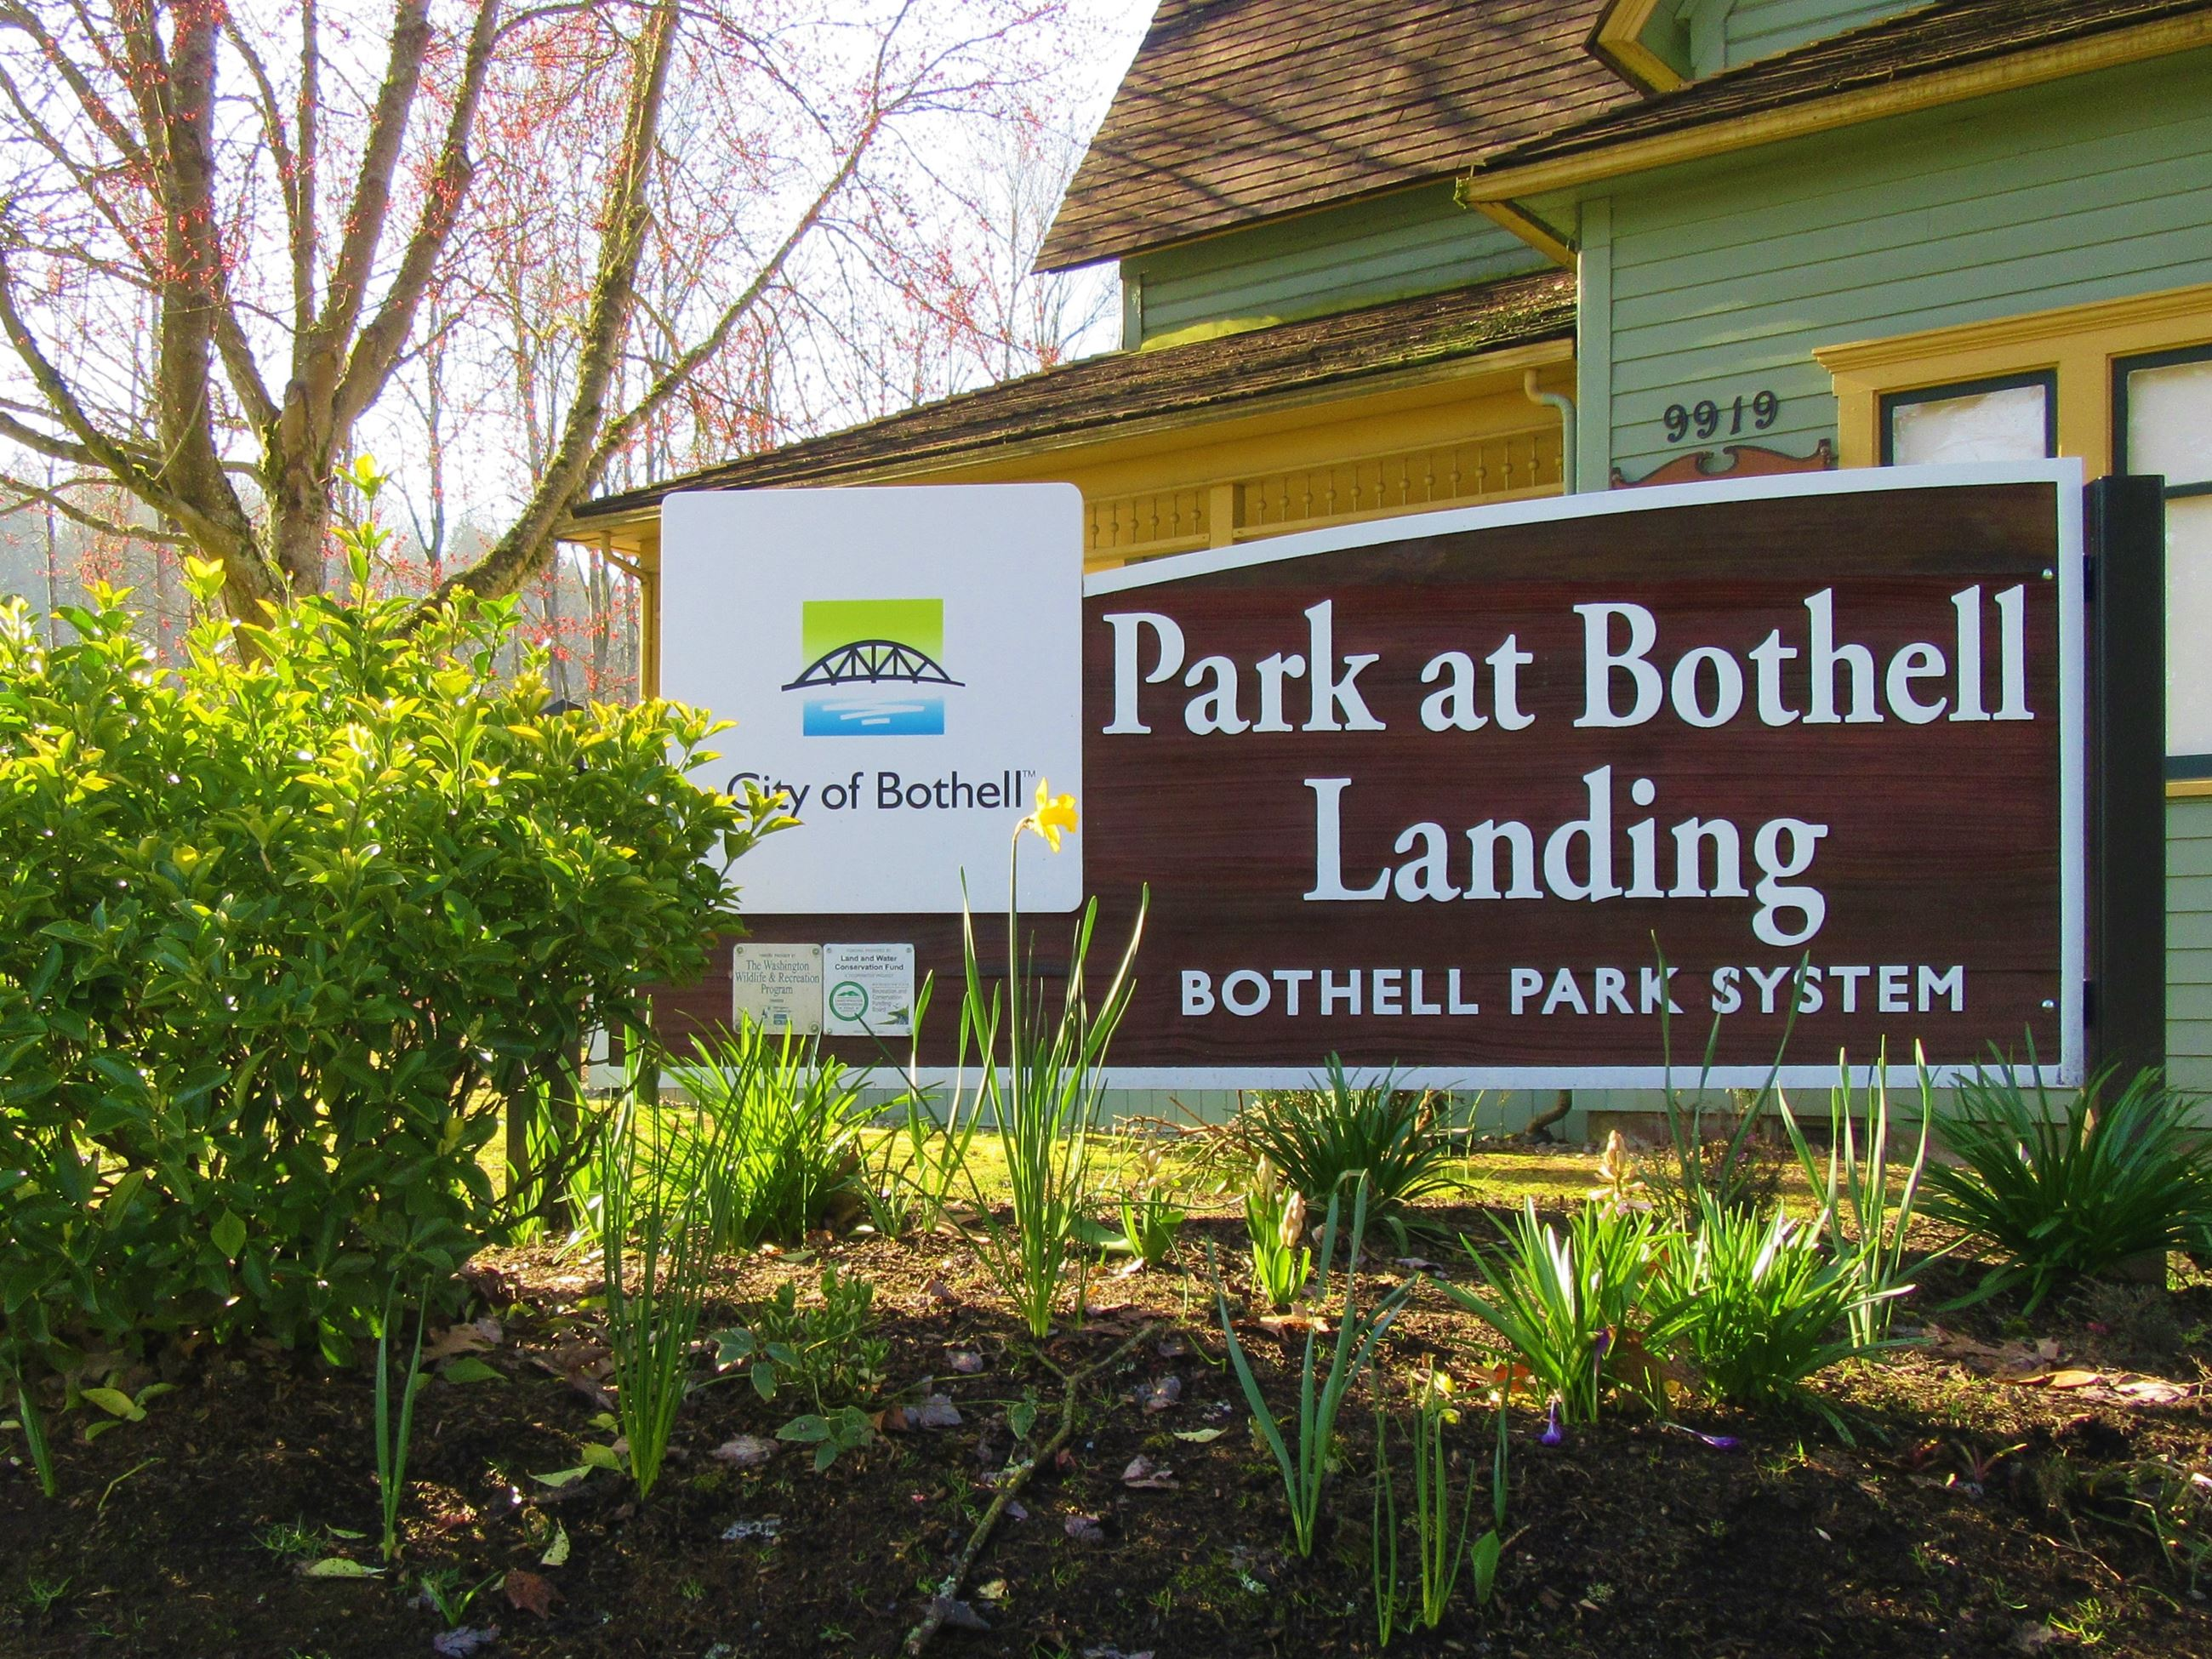 Park at Bothell Landing sign